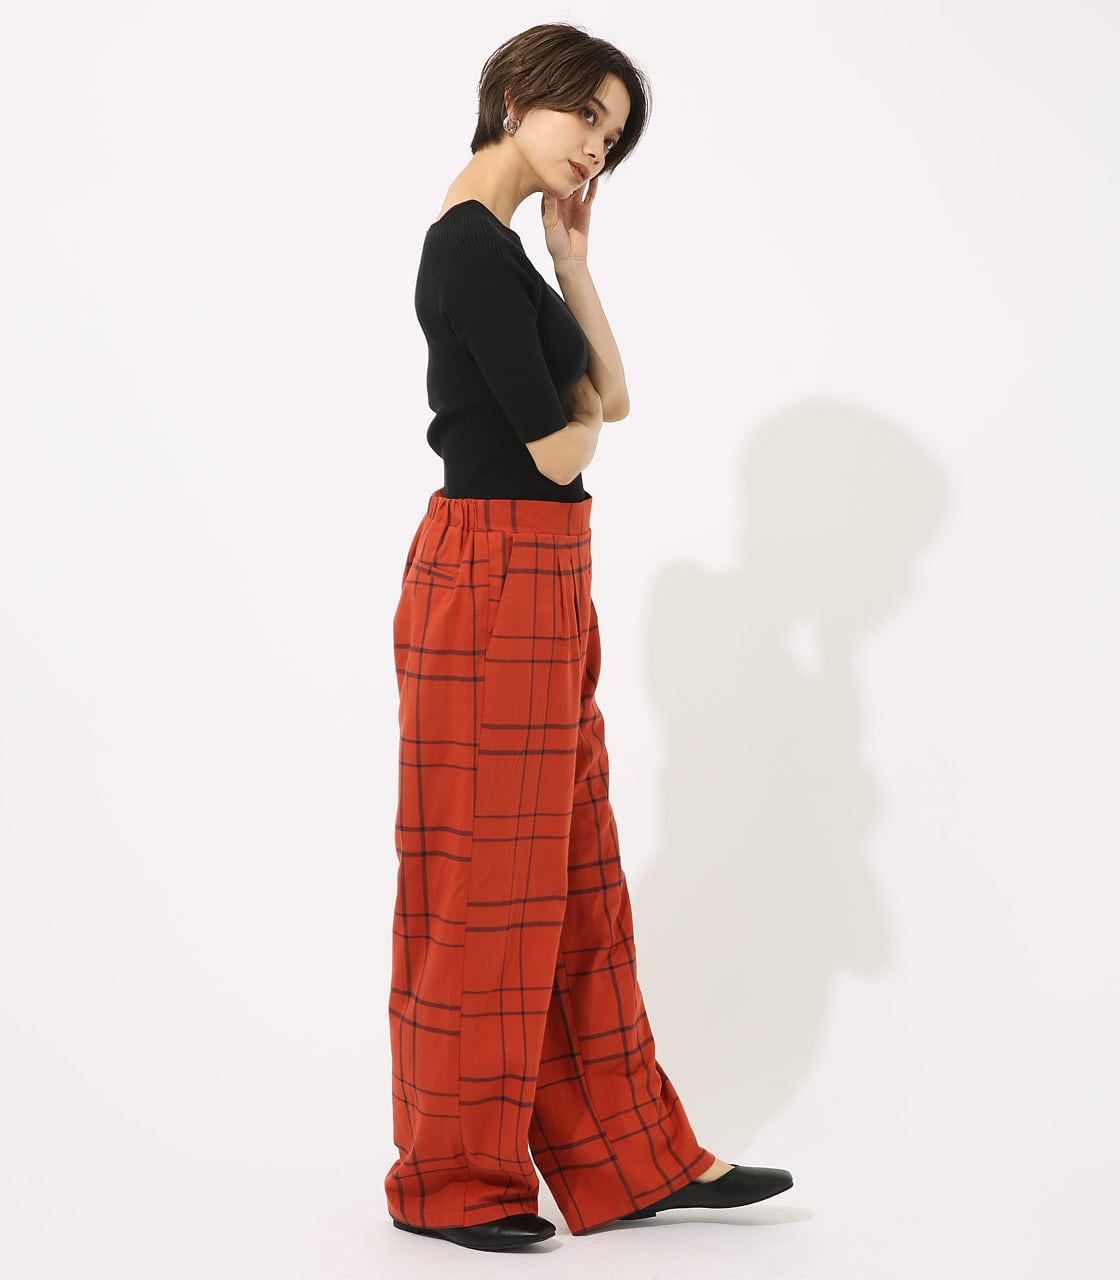 【AZUL BY MOUSSY】CALIF チェックワイドパンツ 詳細画像 柄ORG 4